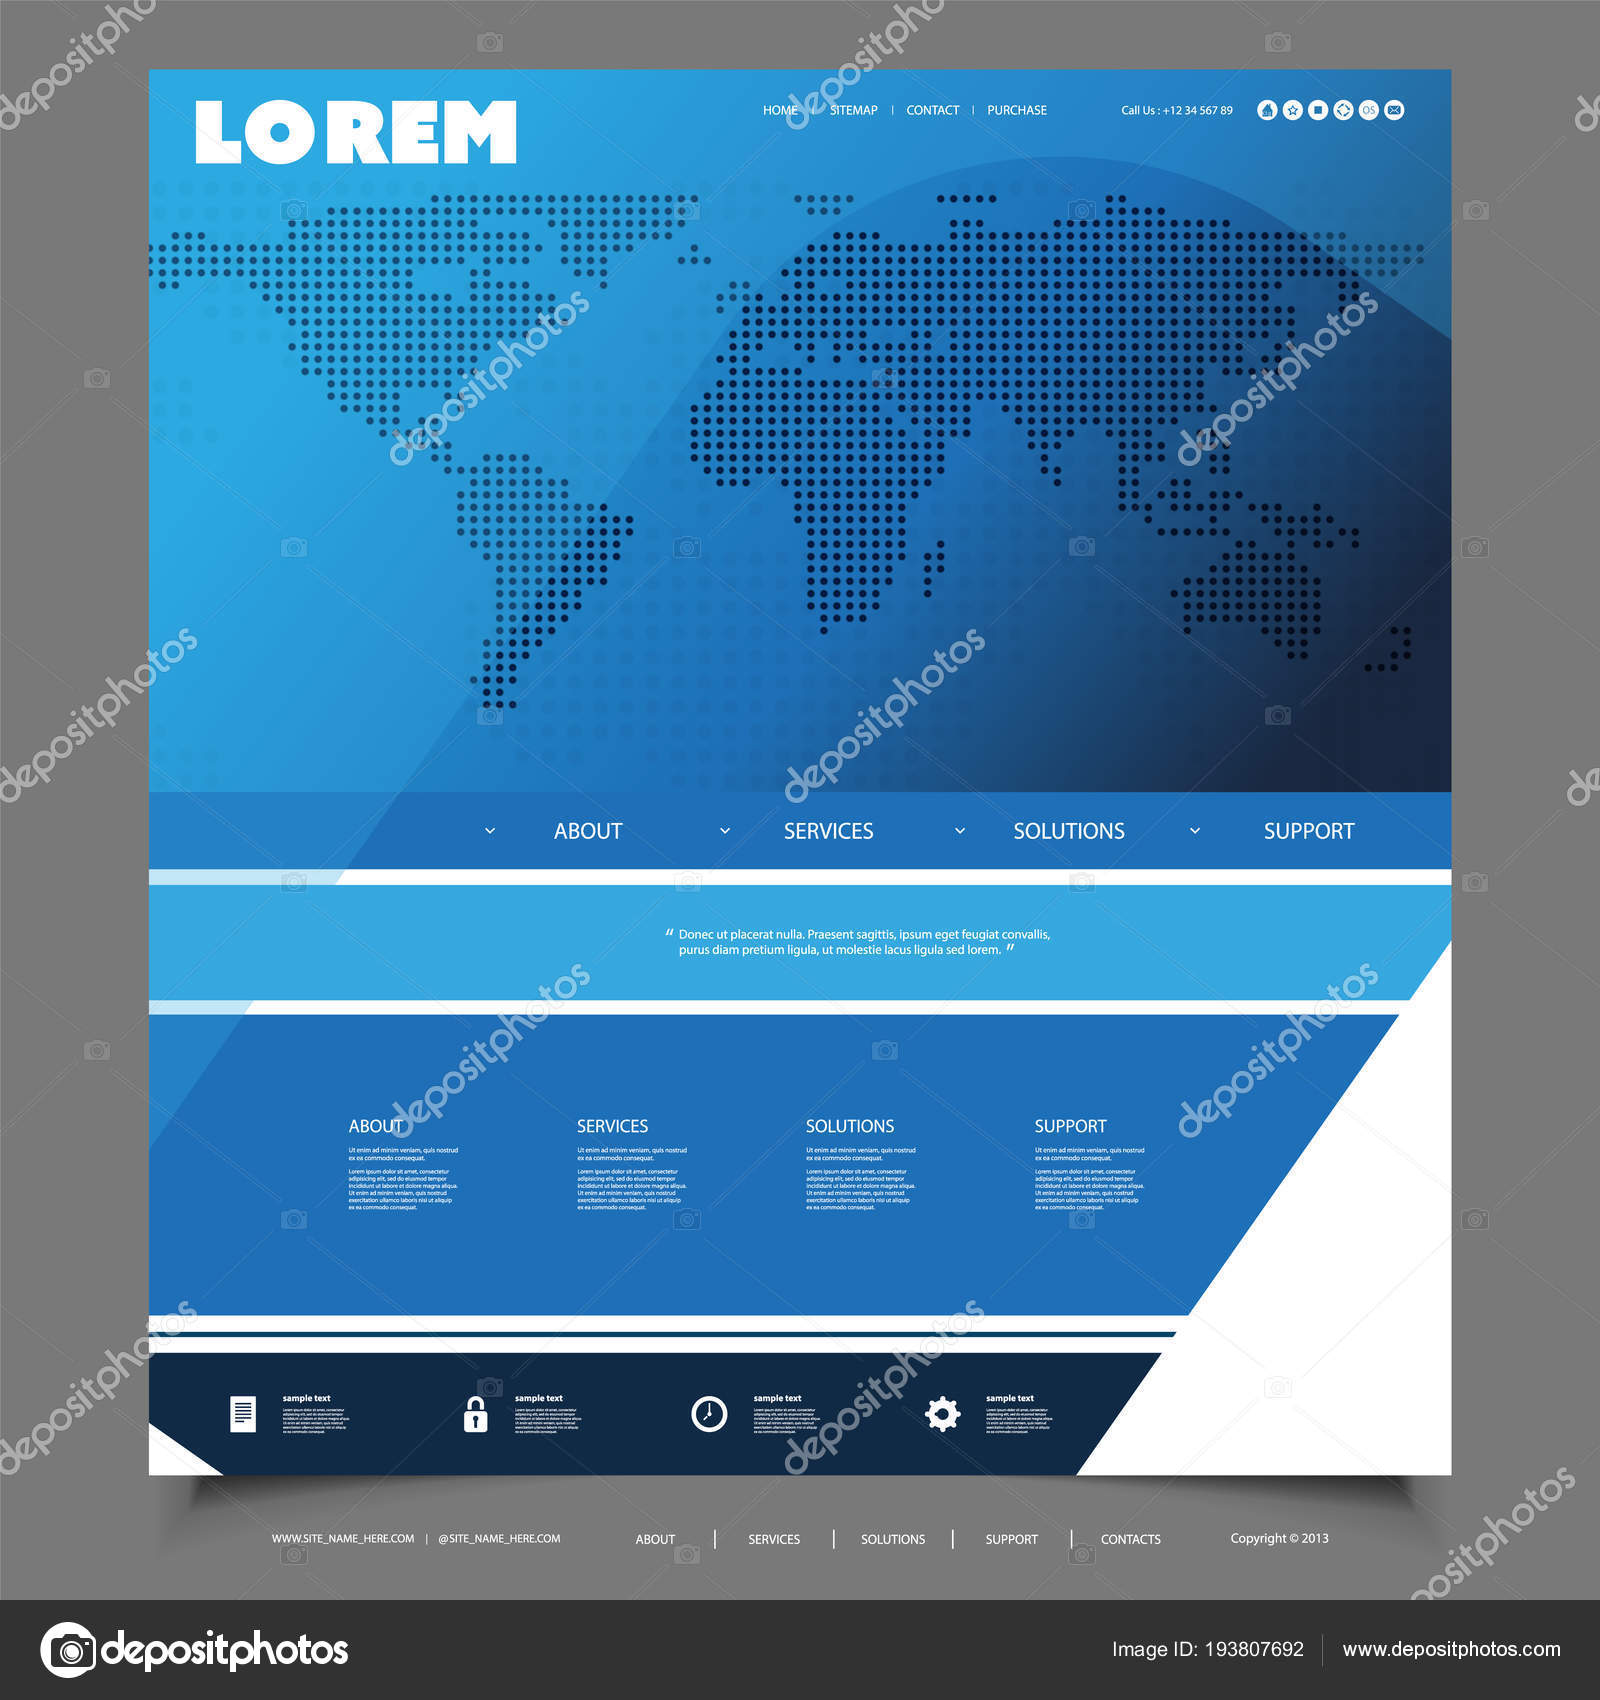 Global Business, Technology - Website Template Design with